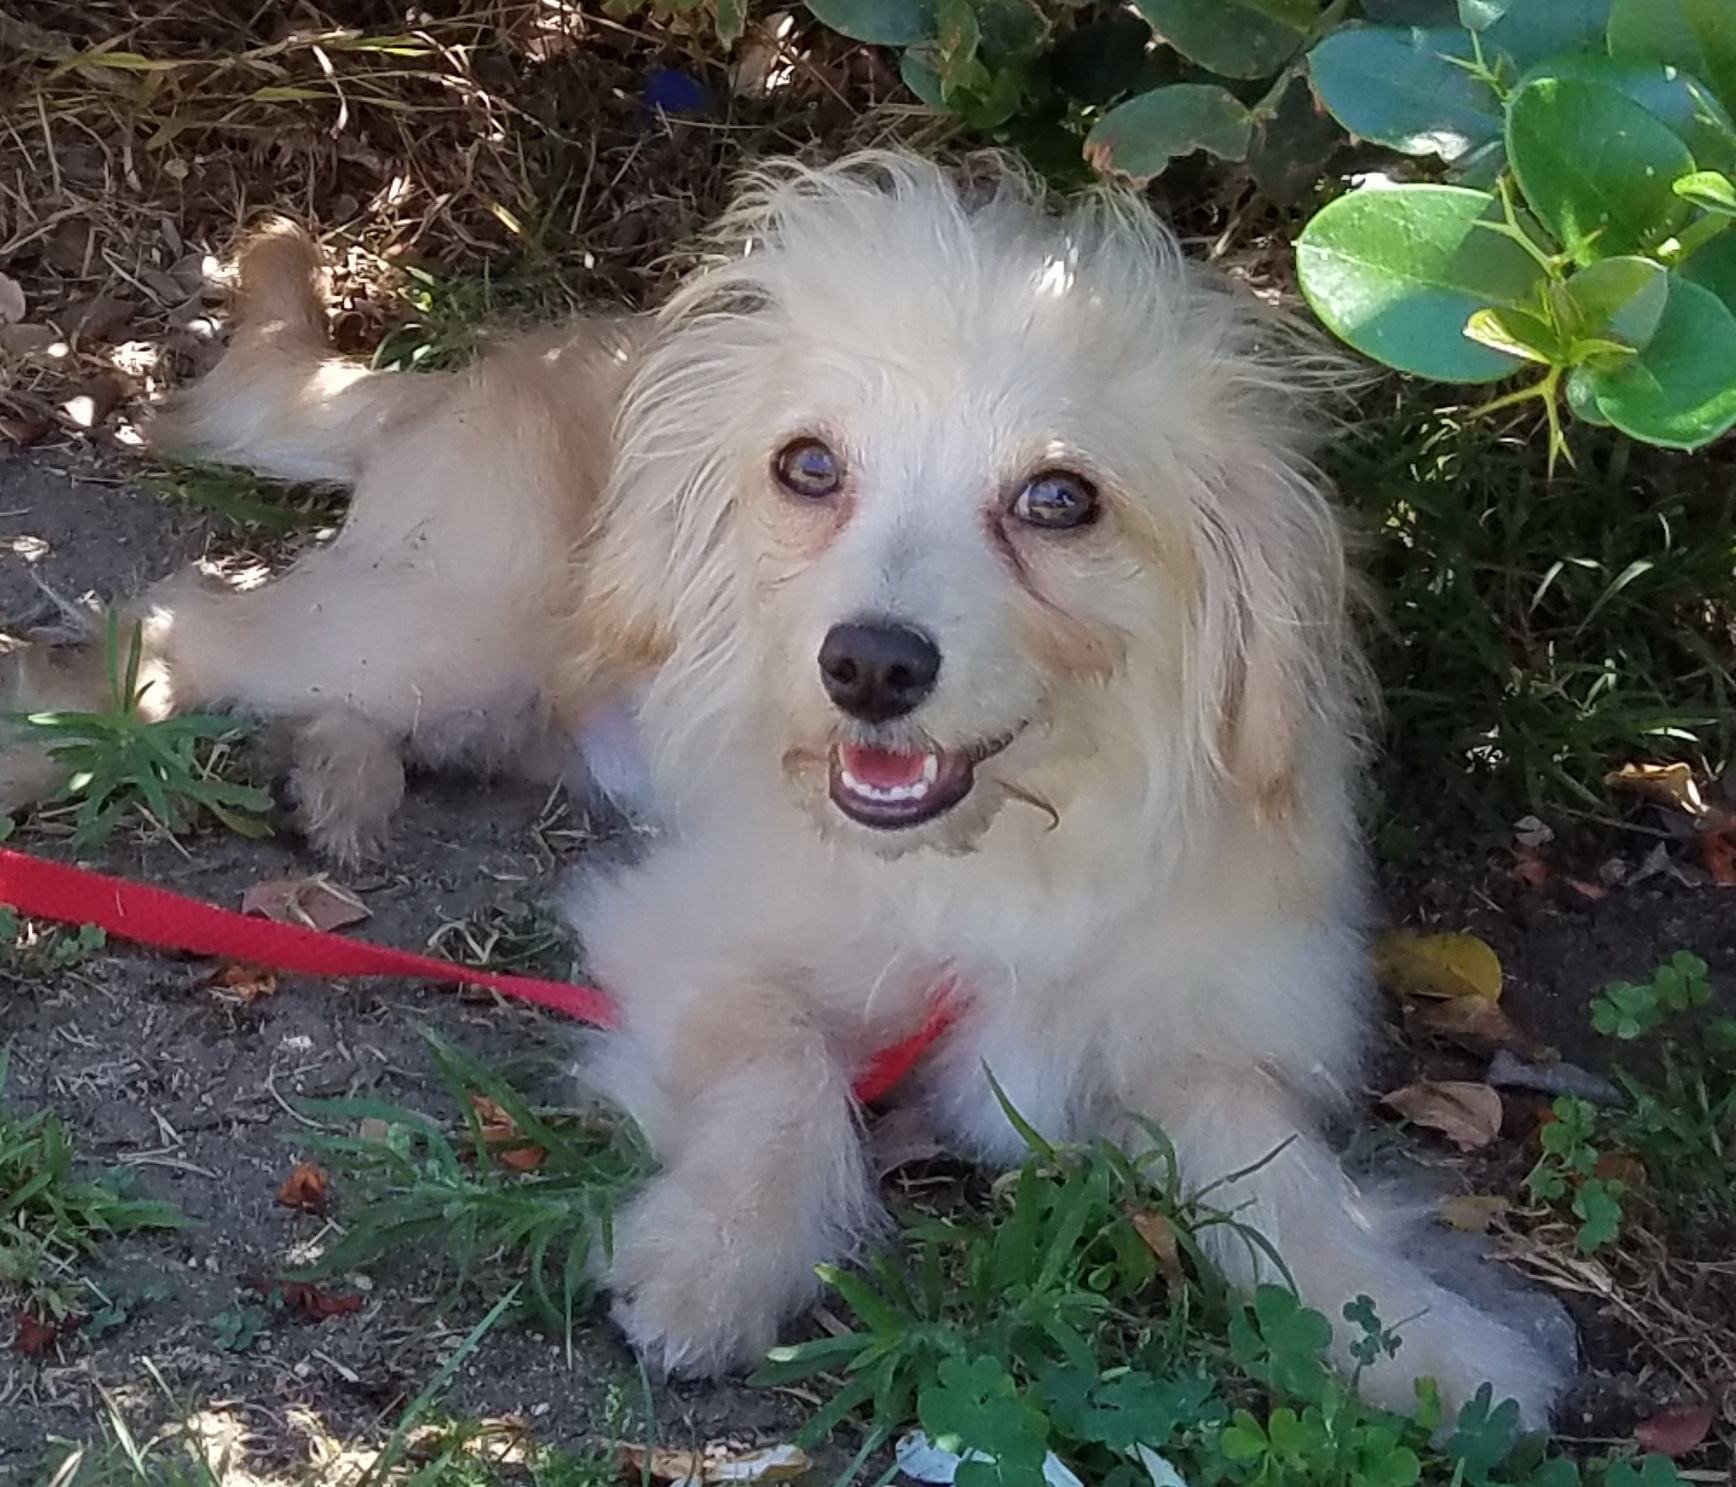 Trendy Robby Can Dogs Eat Savannah Smiles Can Dogs Smile Or Laugh Months Beige Maltese Some Dogs Make You Androbby Is One Who Makes Everyone A Friendly Dog bark post Can Dogs Smile